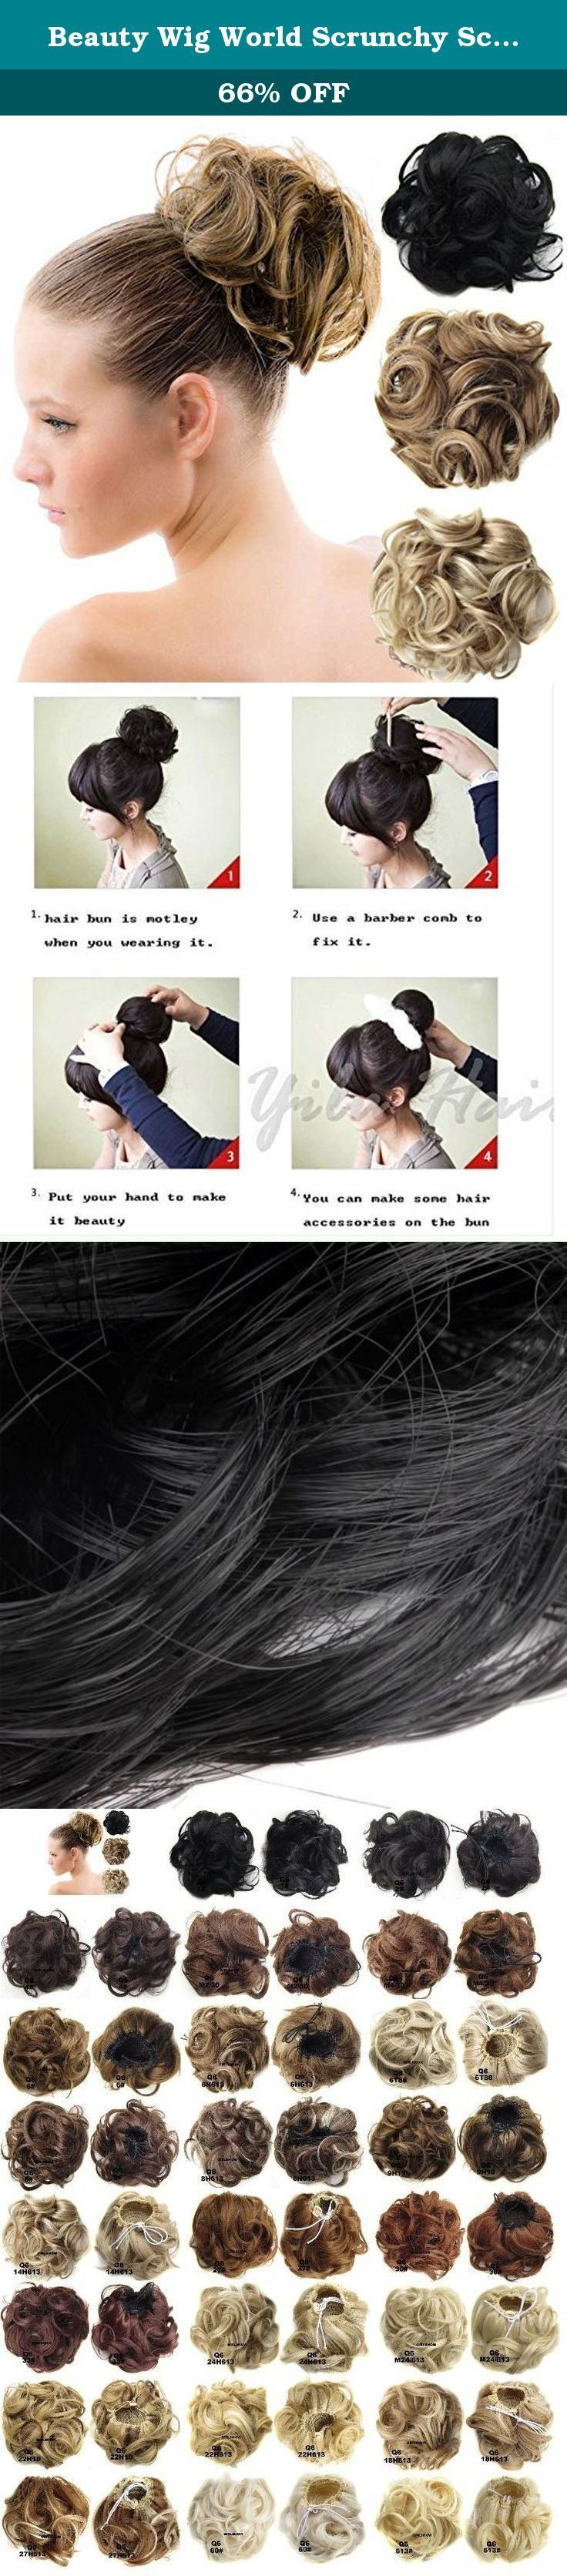 Beauty Wig World Scrunchy Scrunchie Bun Up Do Hairpiece Hair Ribbon Ponytail Ext... - Beauty Chat - Beauty Wig World Scrunchy Scrunchie Bun Up Do Hairpiece Hair Ribbon Ponytail Ext...        Beauty Wig World Scrunchy Scrunchie Bun Up Do Hairpiece Hair Ribbon Ponytail Extensions Wavy Curly or Messy Color(14H613#Light Blonde). Product Information Material:Heat-resistance Fringe. Net diameter:12CM Weight:60gr. Notice: Item color displayed in photos may be showing slightly different on your compute #curlyupdo